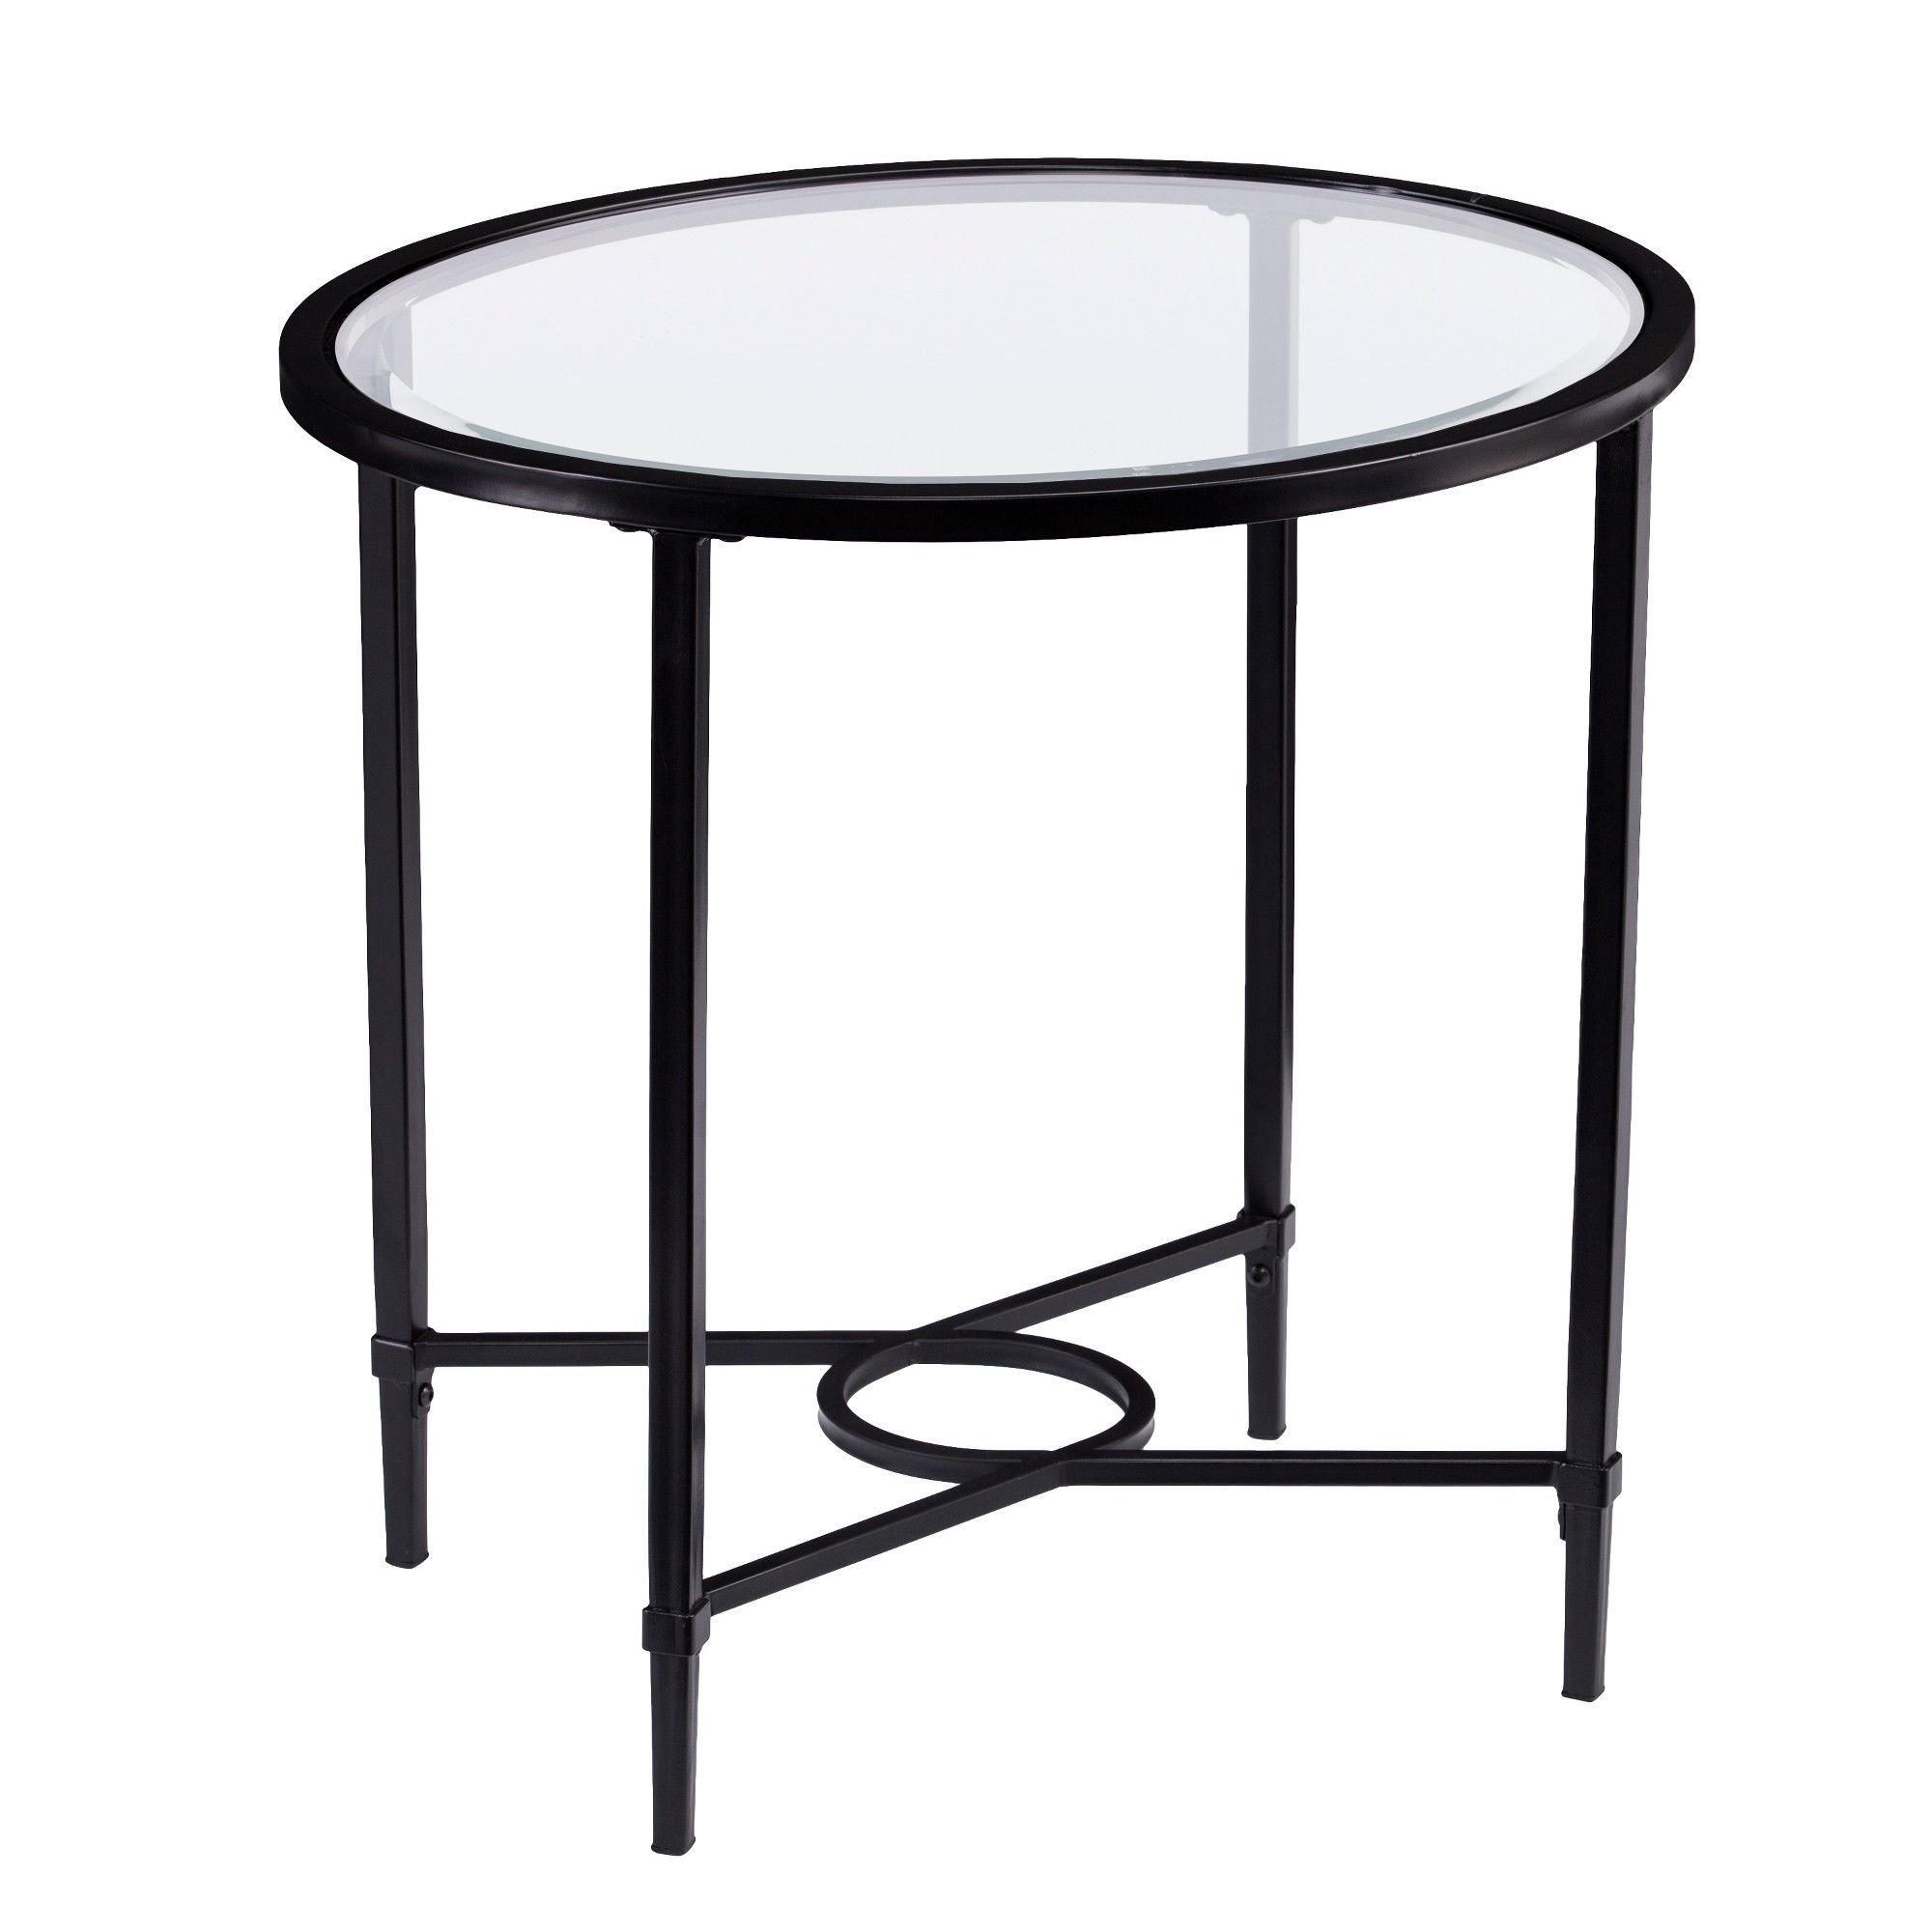 dickinson metal glass oval side table black aiden lane small accent pottery barn white bedside wood stool pier mirrored turquoise console high top kitchen coffee solid trestle